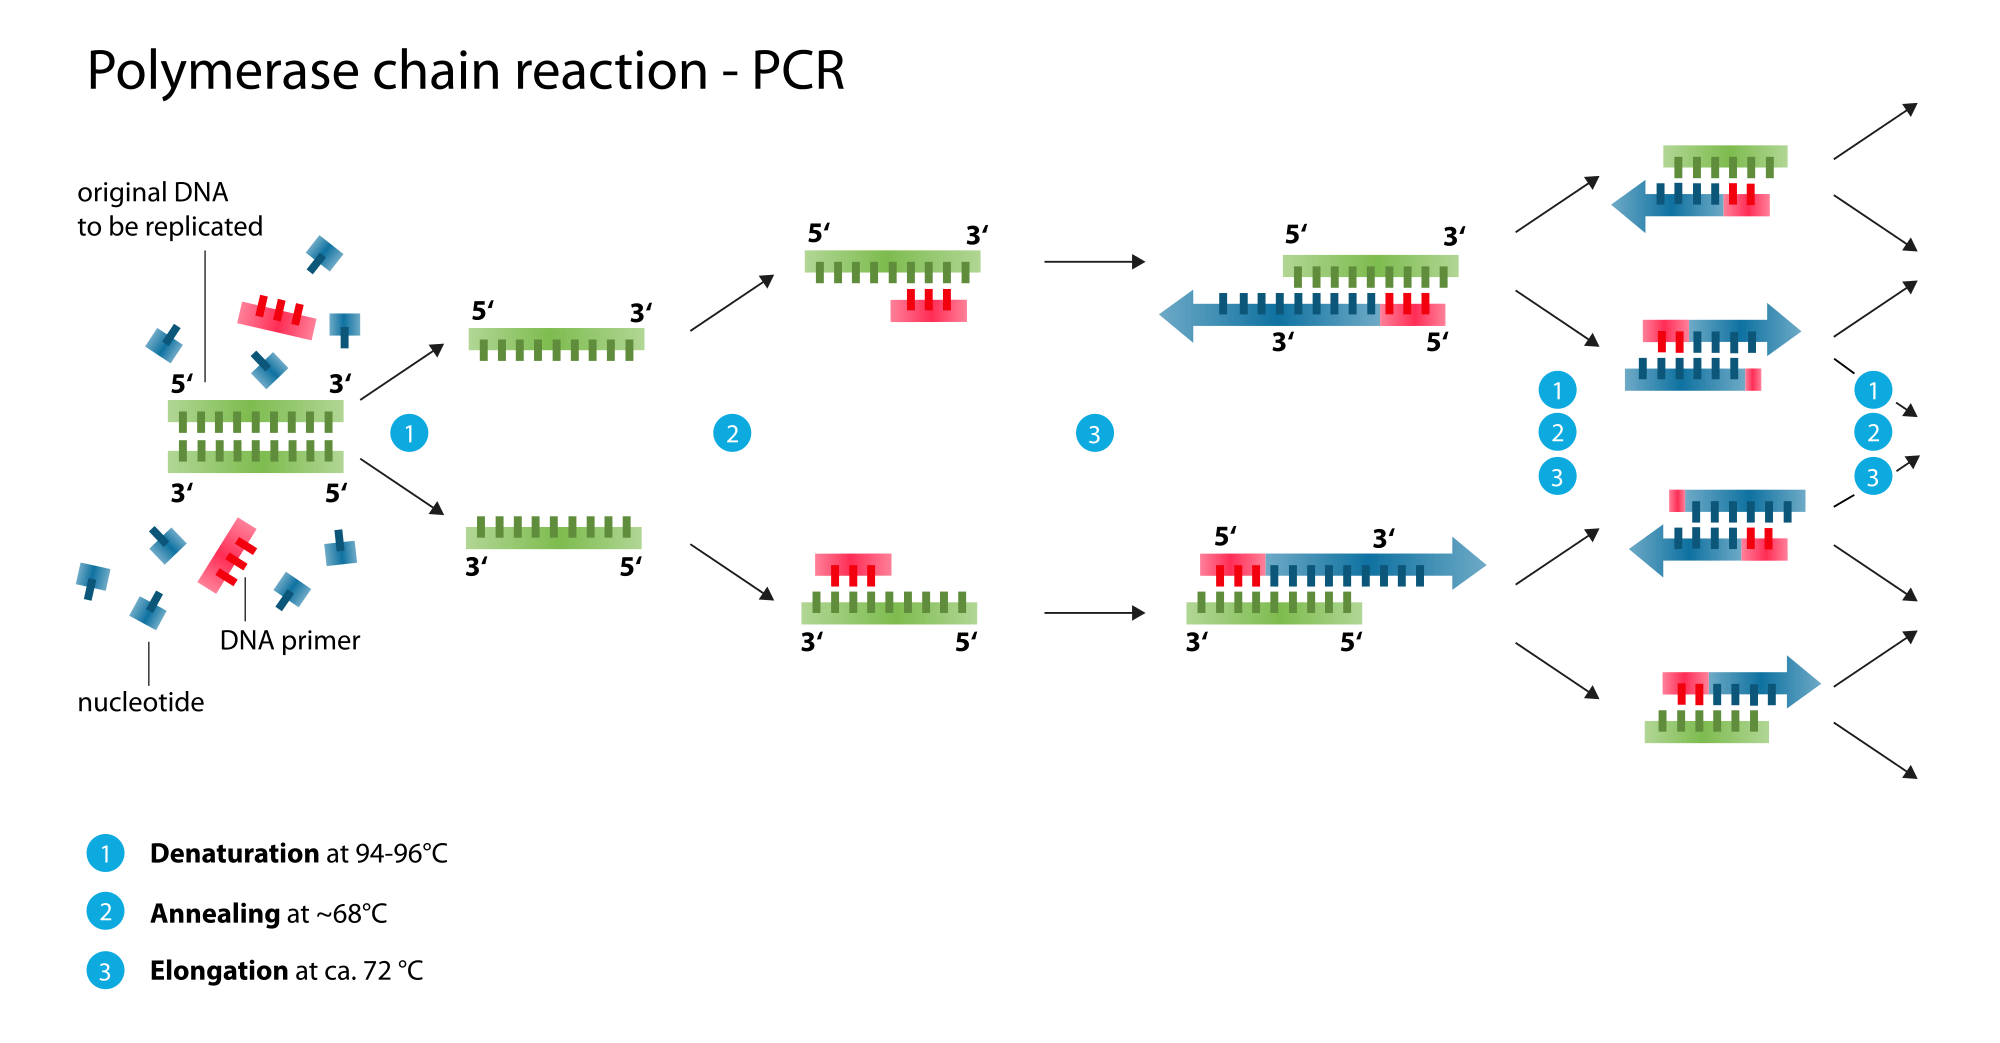 Dna svg rna label. Polymerase chain reaction infographic